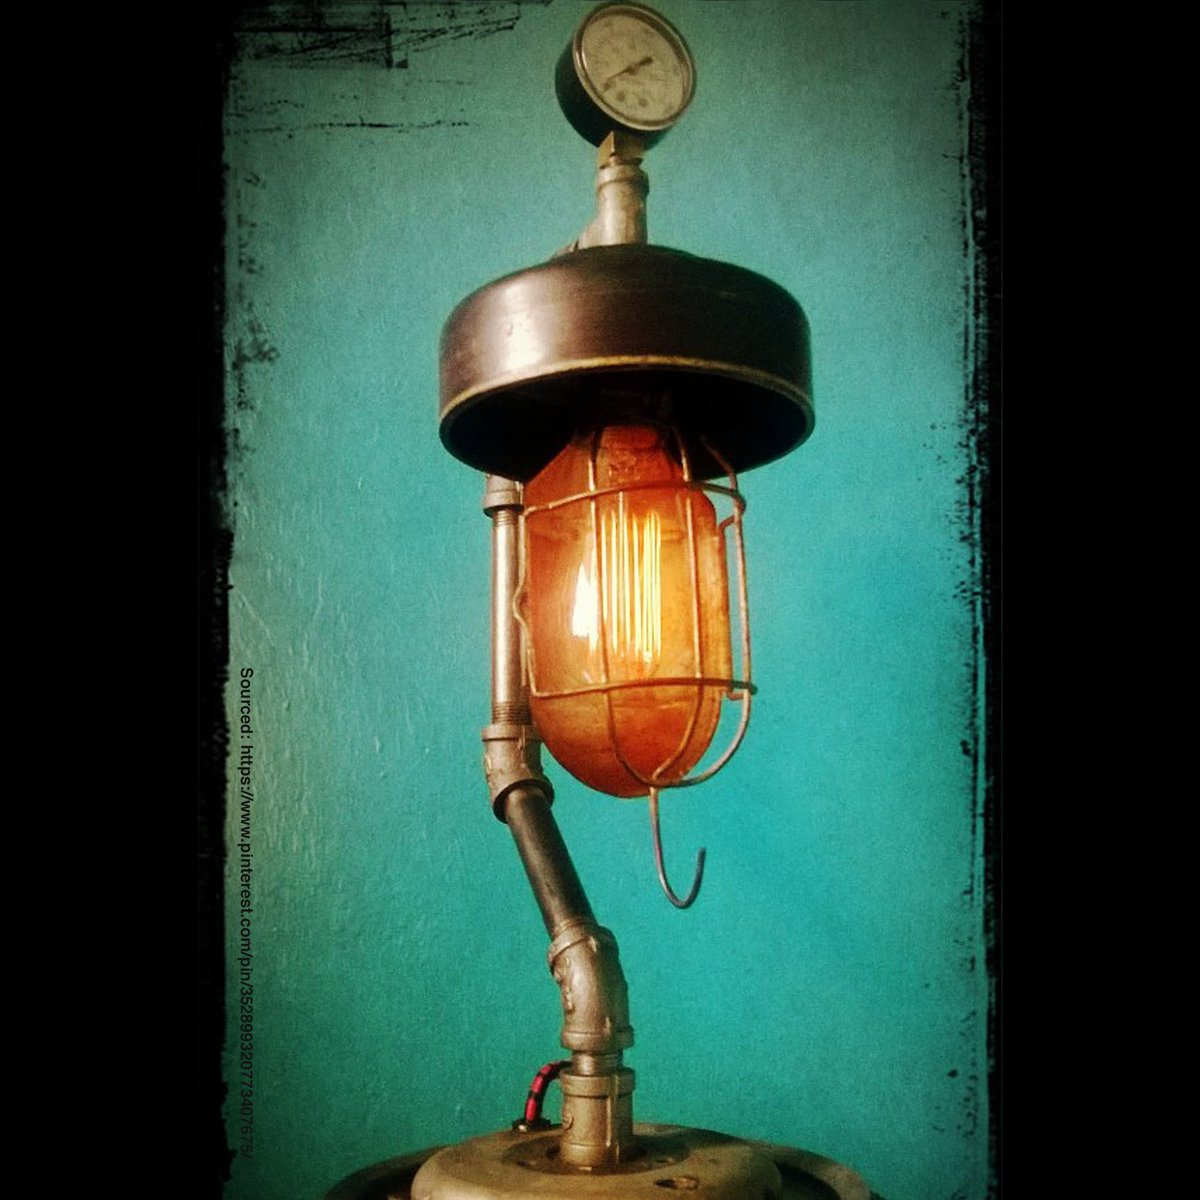 Industrial lamp made with recycled car lamps! Really steampunk looking. #RecycledCarParts #CarPartsArt #Lamp #Sculpture #Art #CarParts #AutoParts #RecycledMaterials #Recycle #RecycleAutoParts